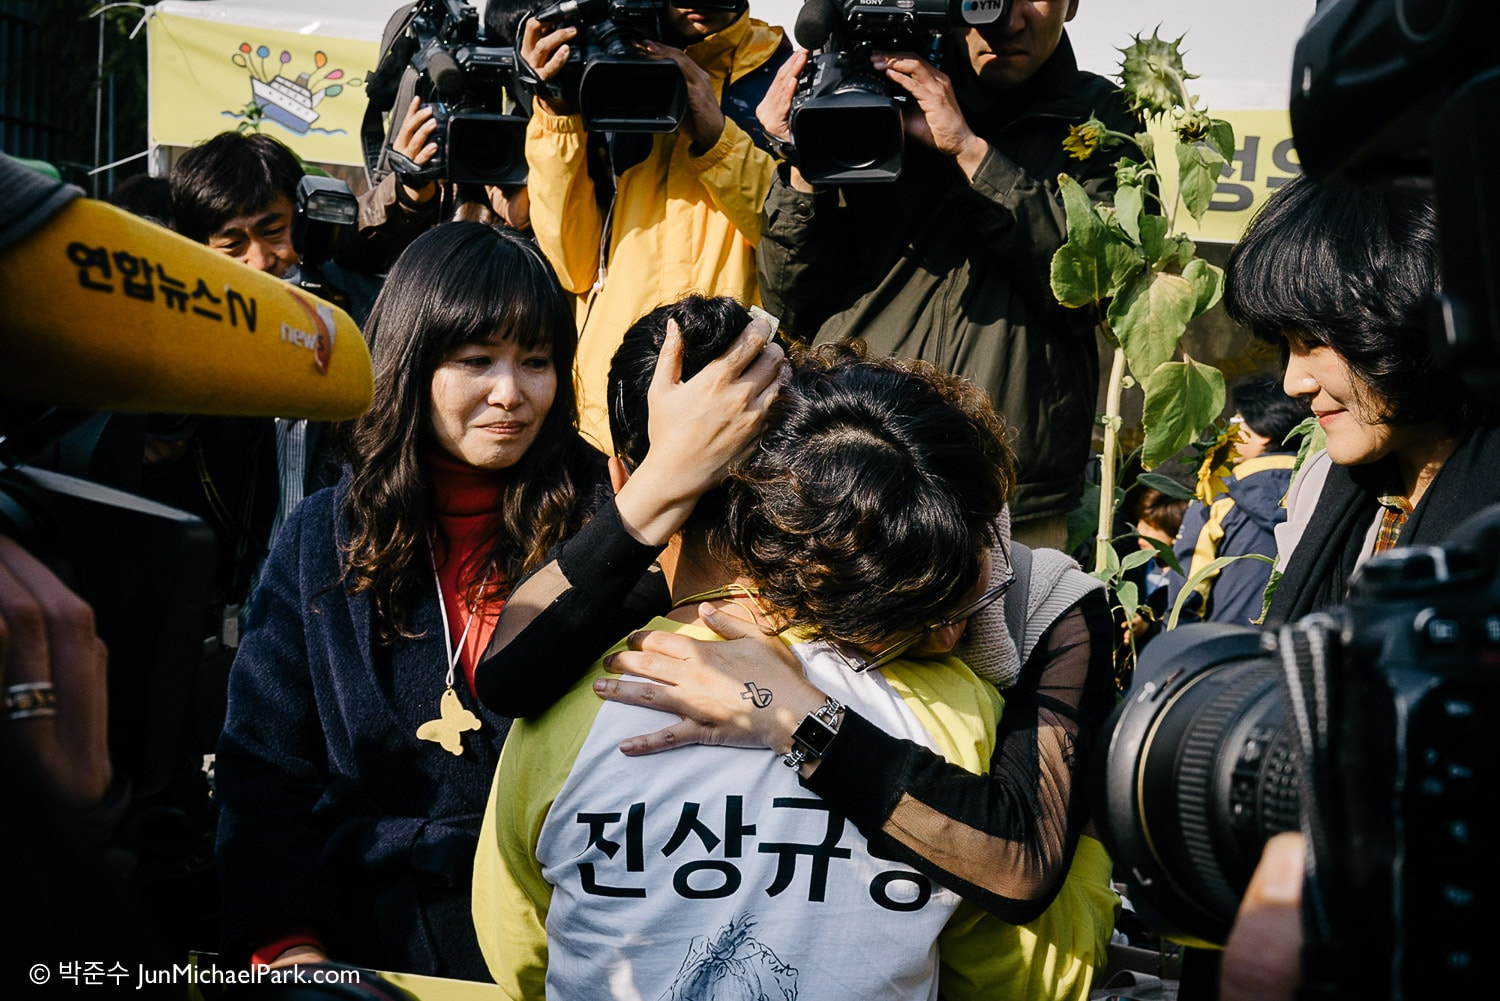 A volunteer hugs a bereaved mother, as the Sewol families pull the protest tents from Cheongwun-dong near the Presidential Palace after 76 days. There was no gesture from the President's Office.